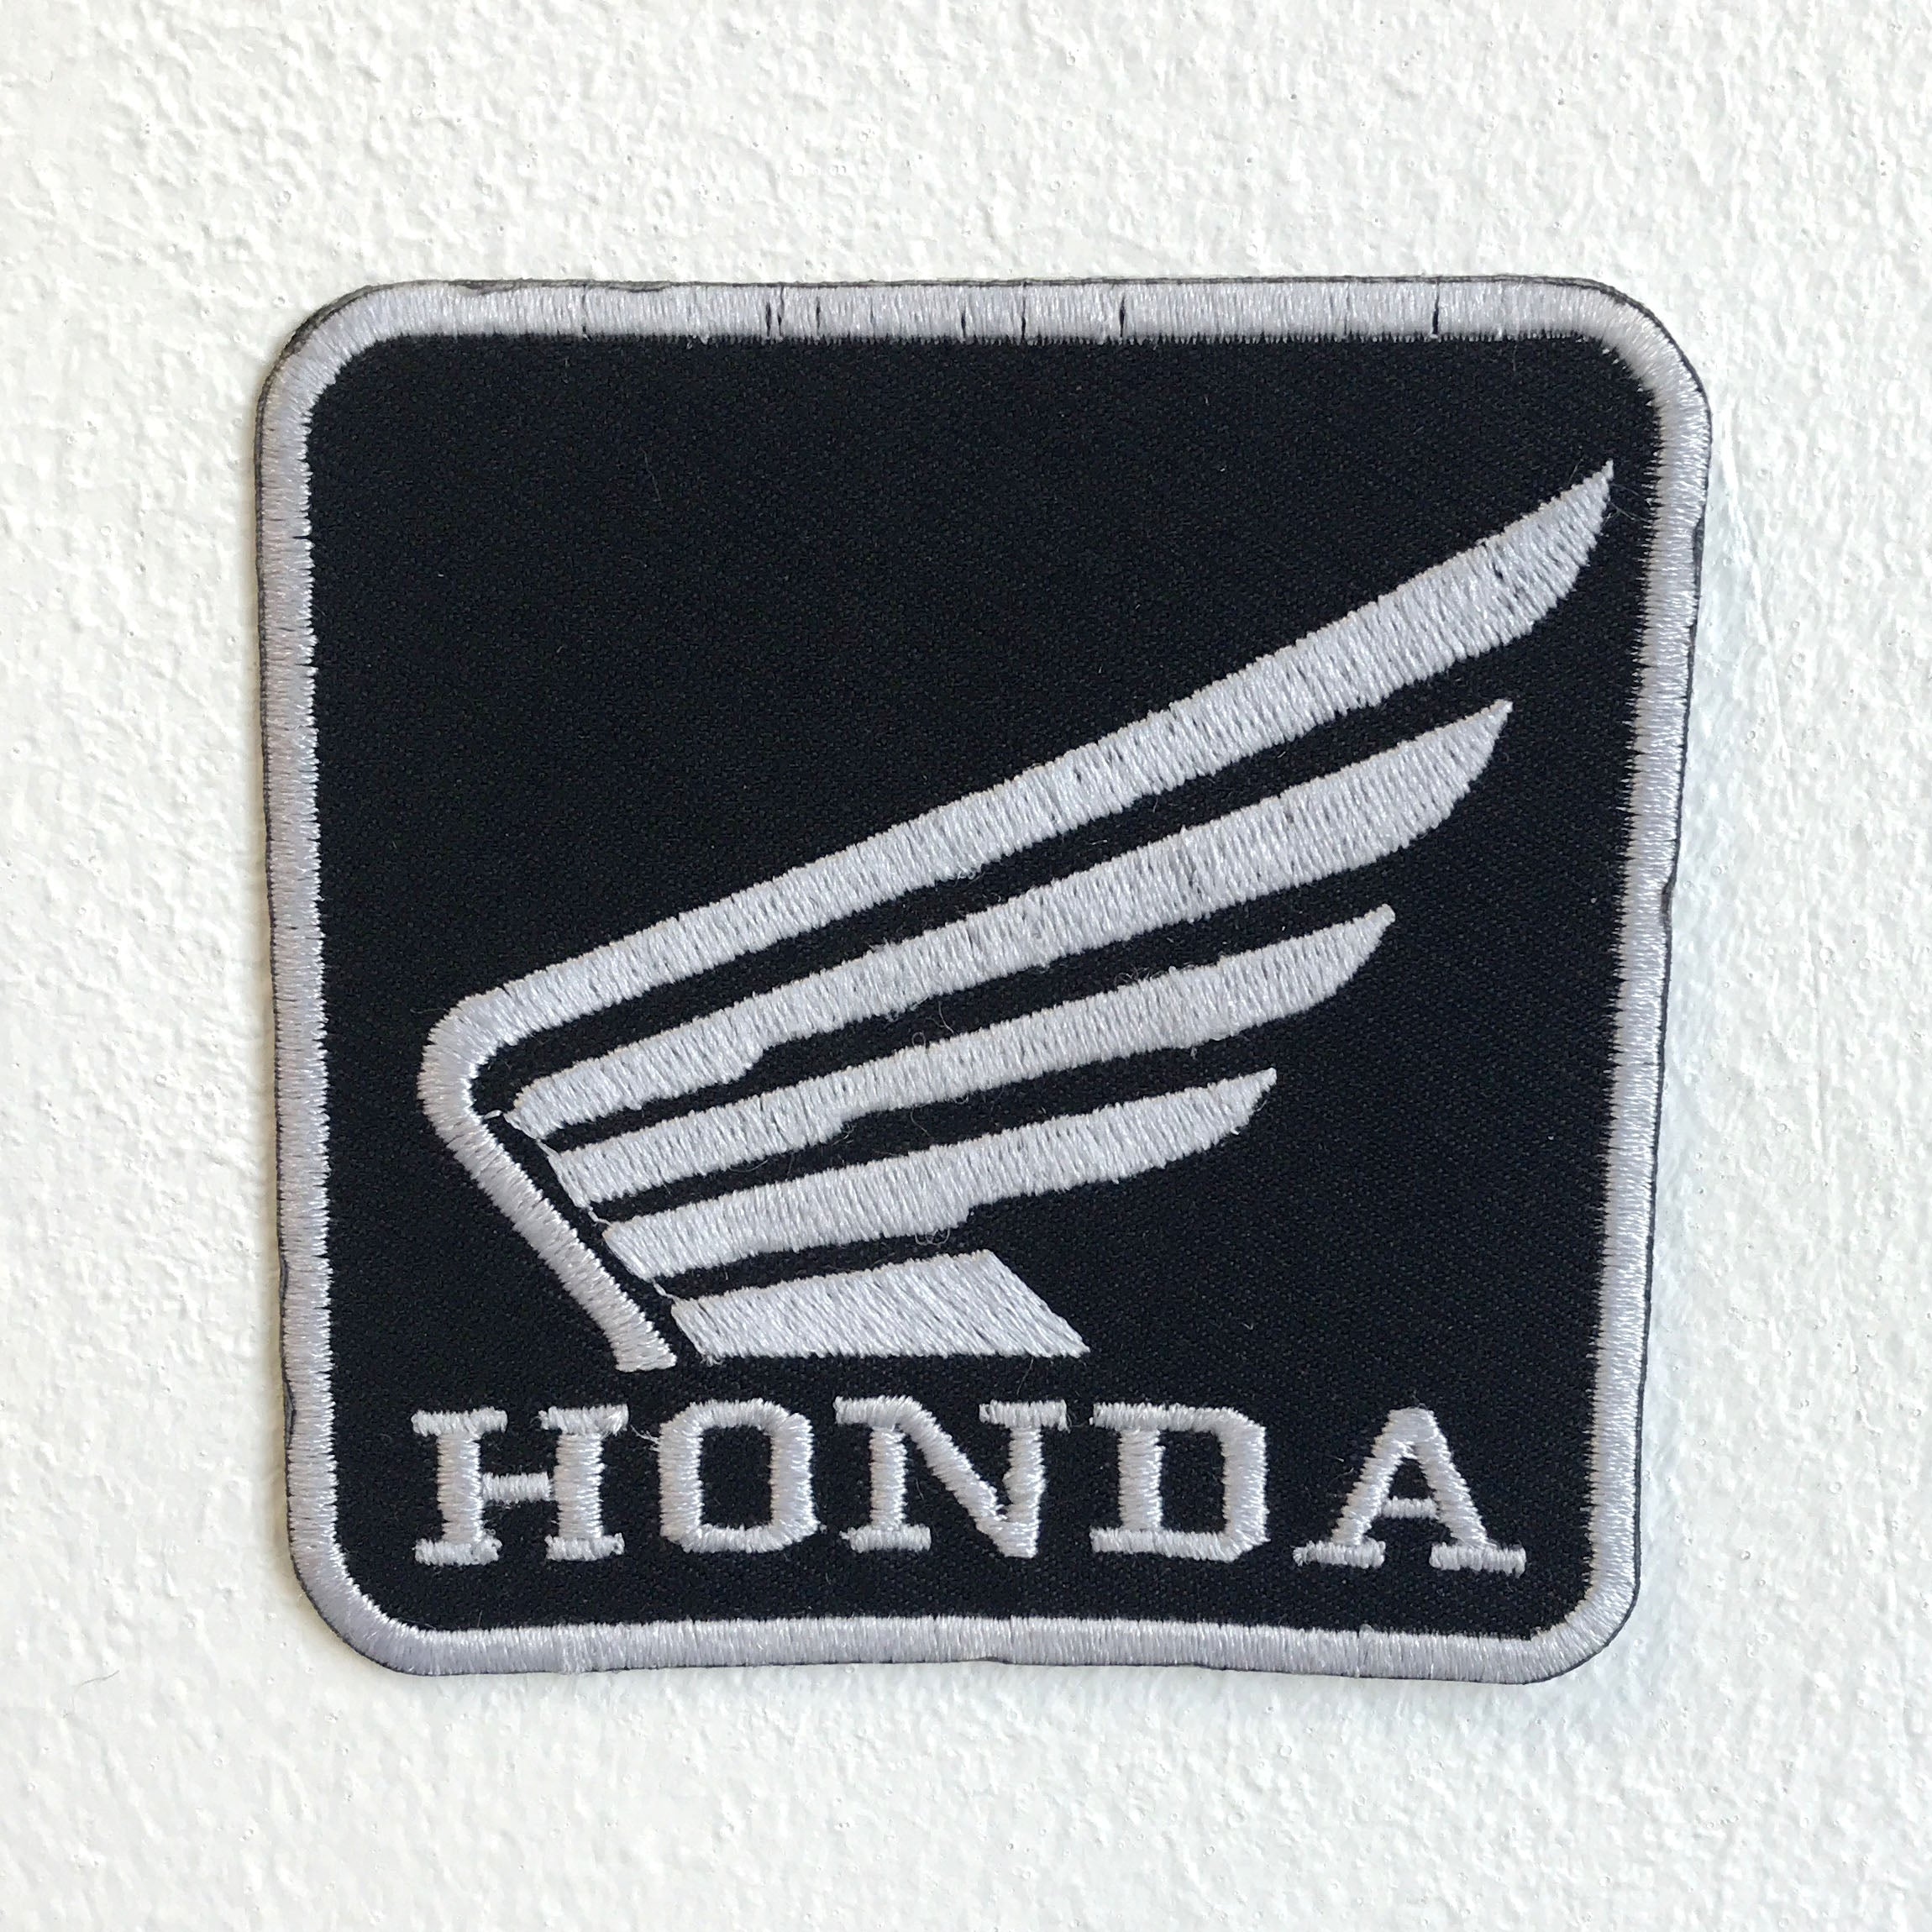 Honda Motorsports Racing Biker Iron Sew on Embroidered Patch - Patches-Badges